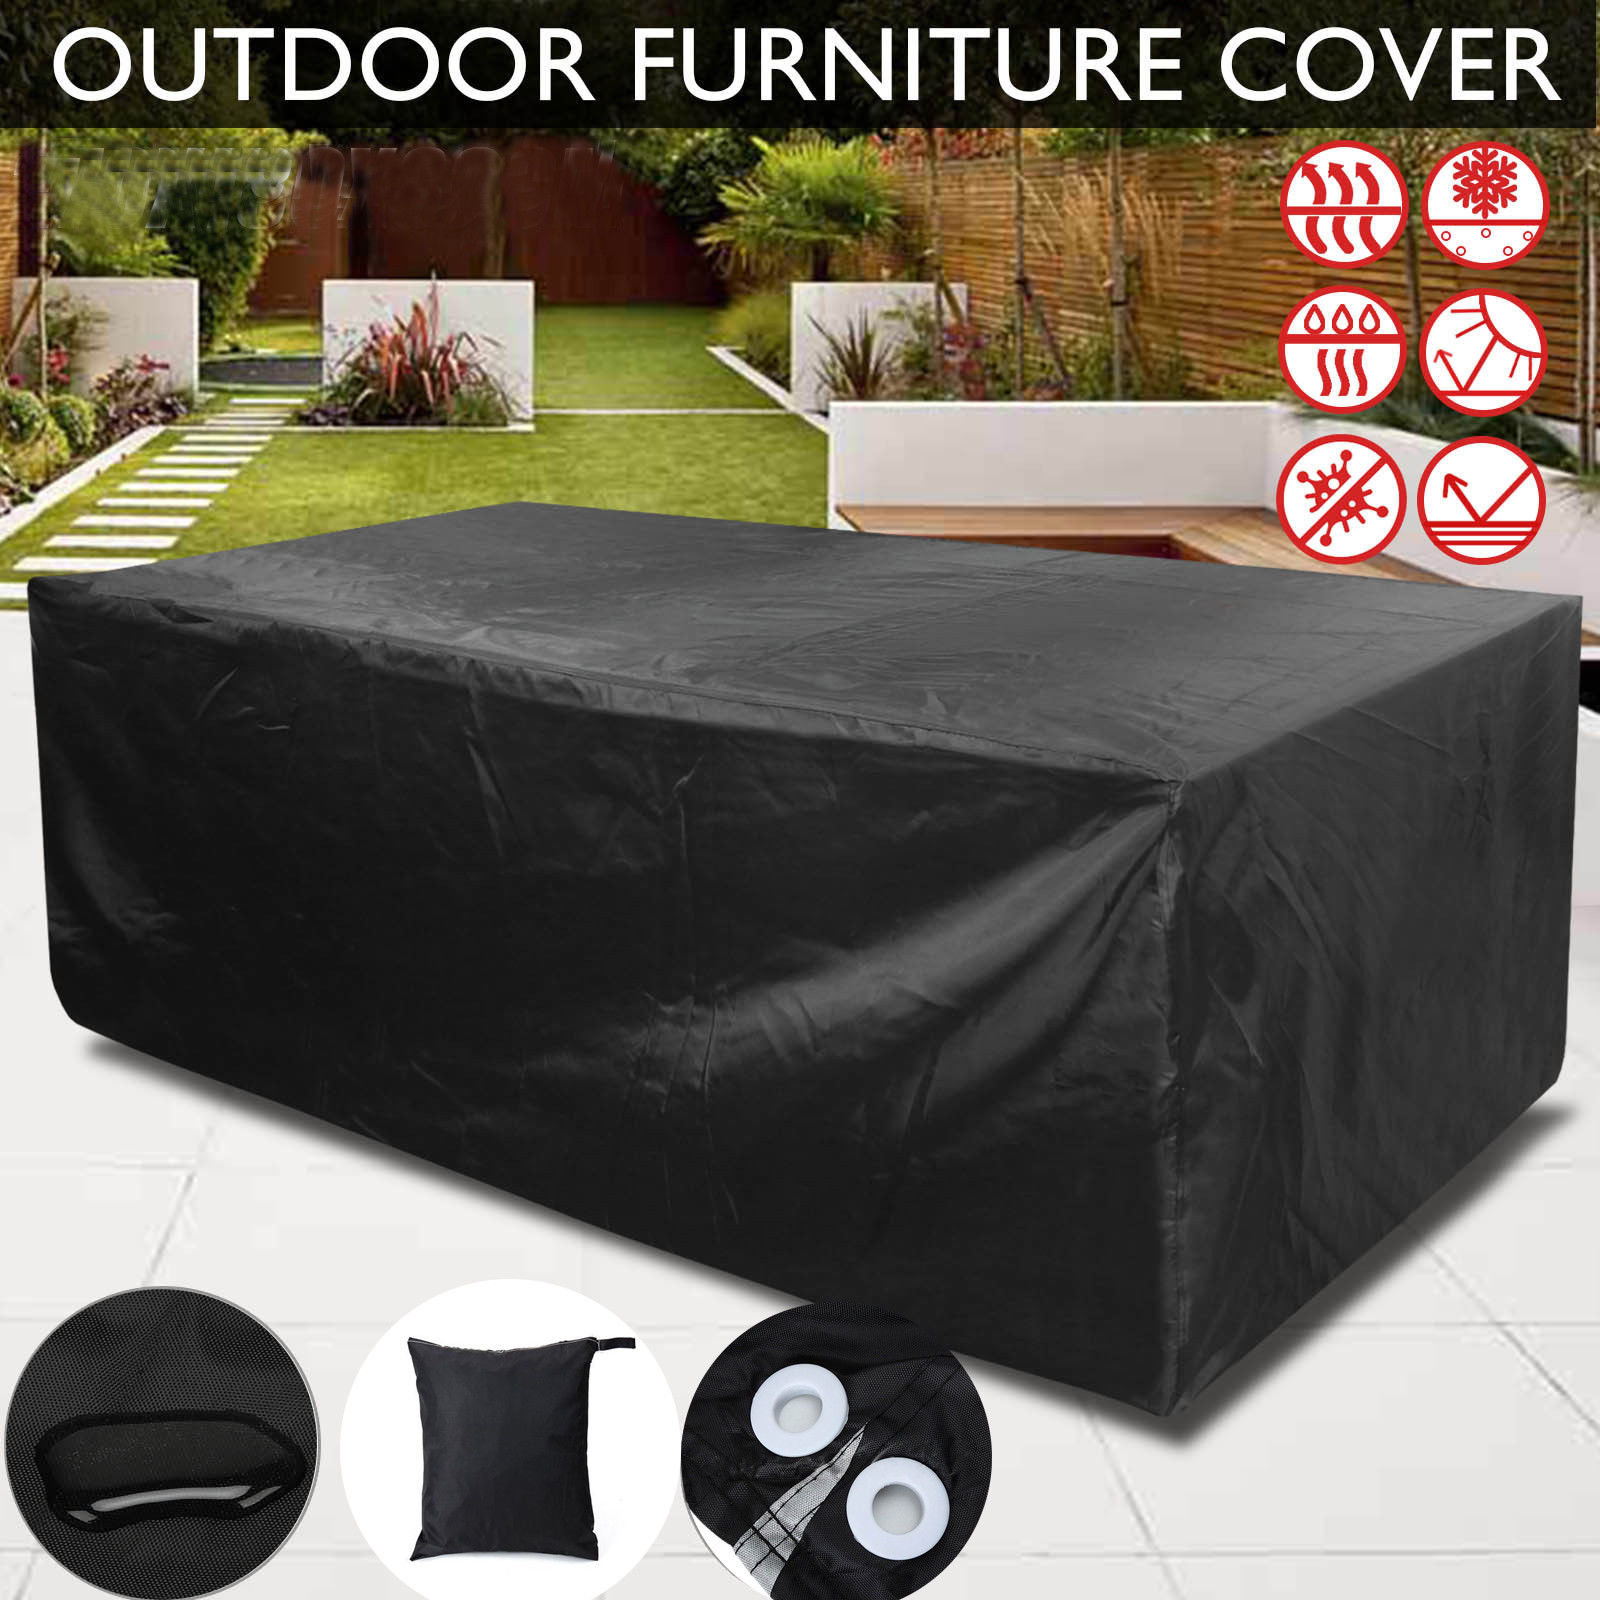 Waterproof Garden Furniture Newest arrivals faroot 2018 garden outdoor furniture rain cover 4 size waterproof outdoor patio garden furniture rain snow chair black covers for table chair housse workwithnaturefo